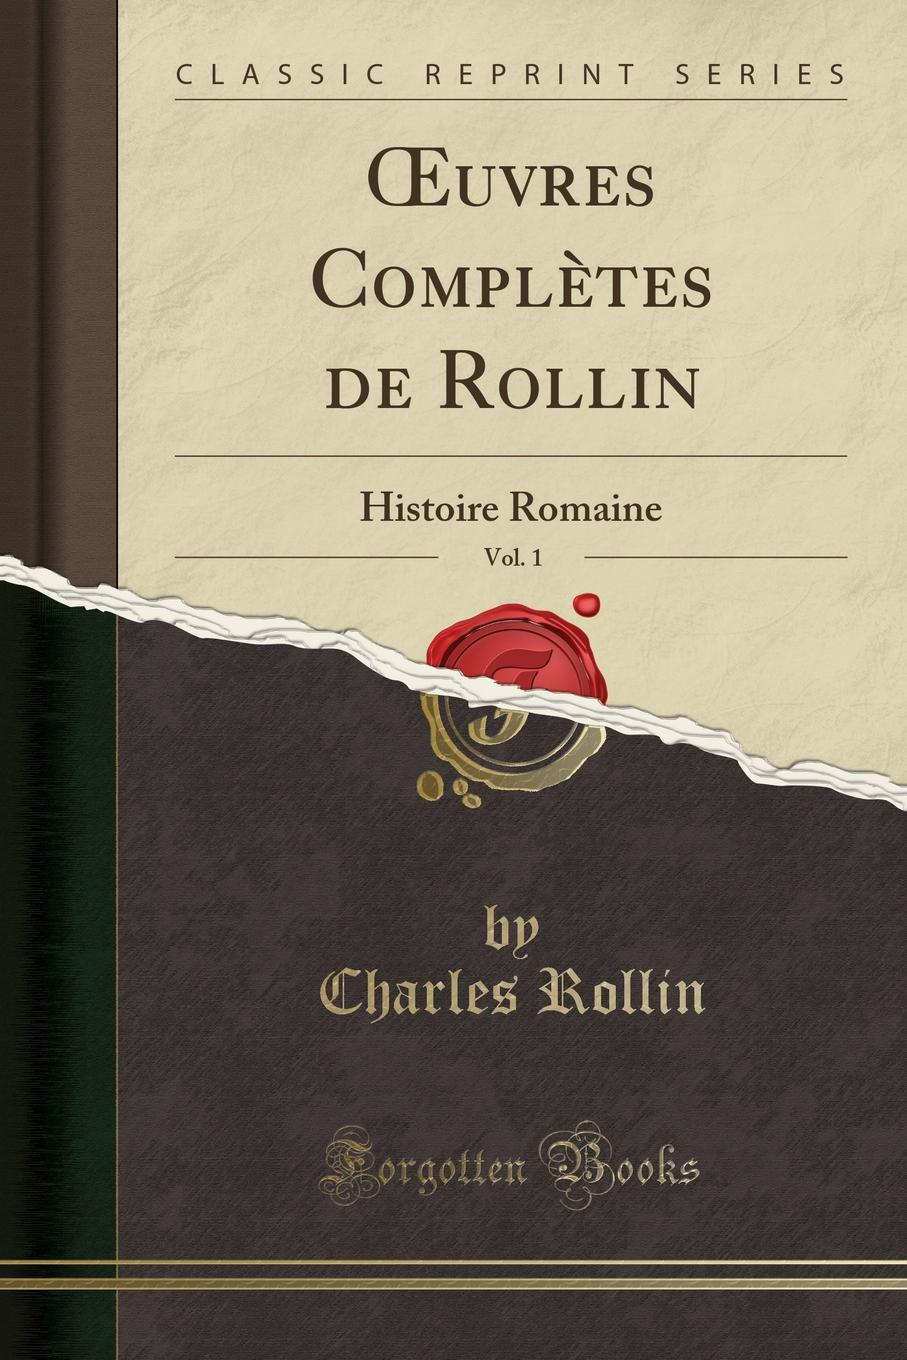 Charles Rollin OEuvres Completes de Rollin, Vol. 1. Histoire Romaine (Classic Reprint)